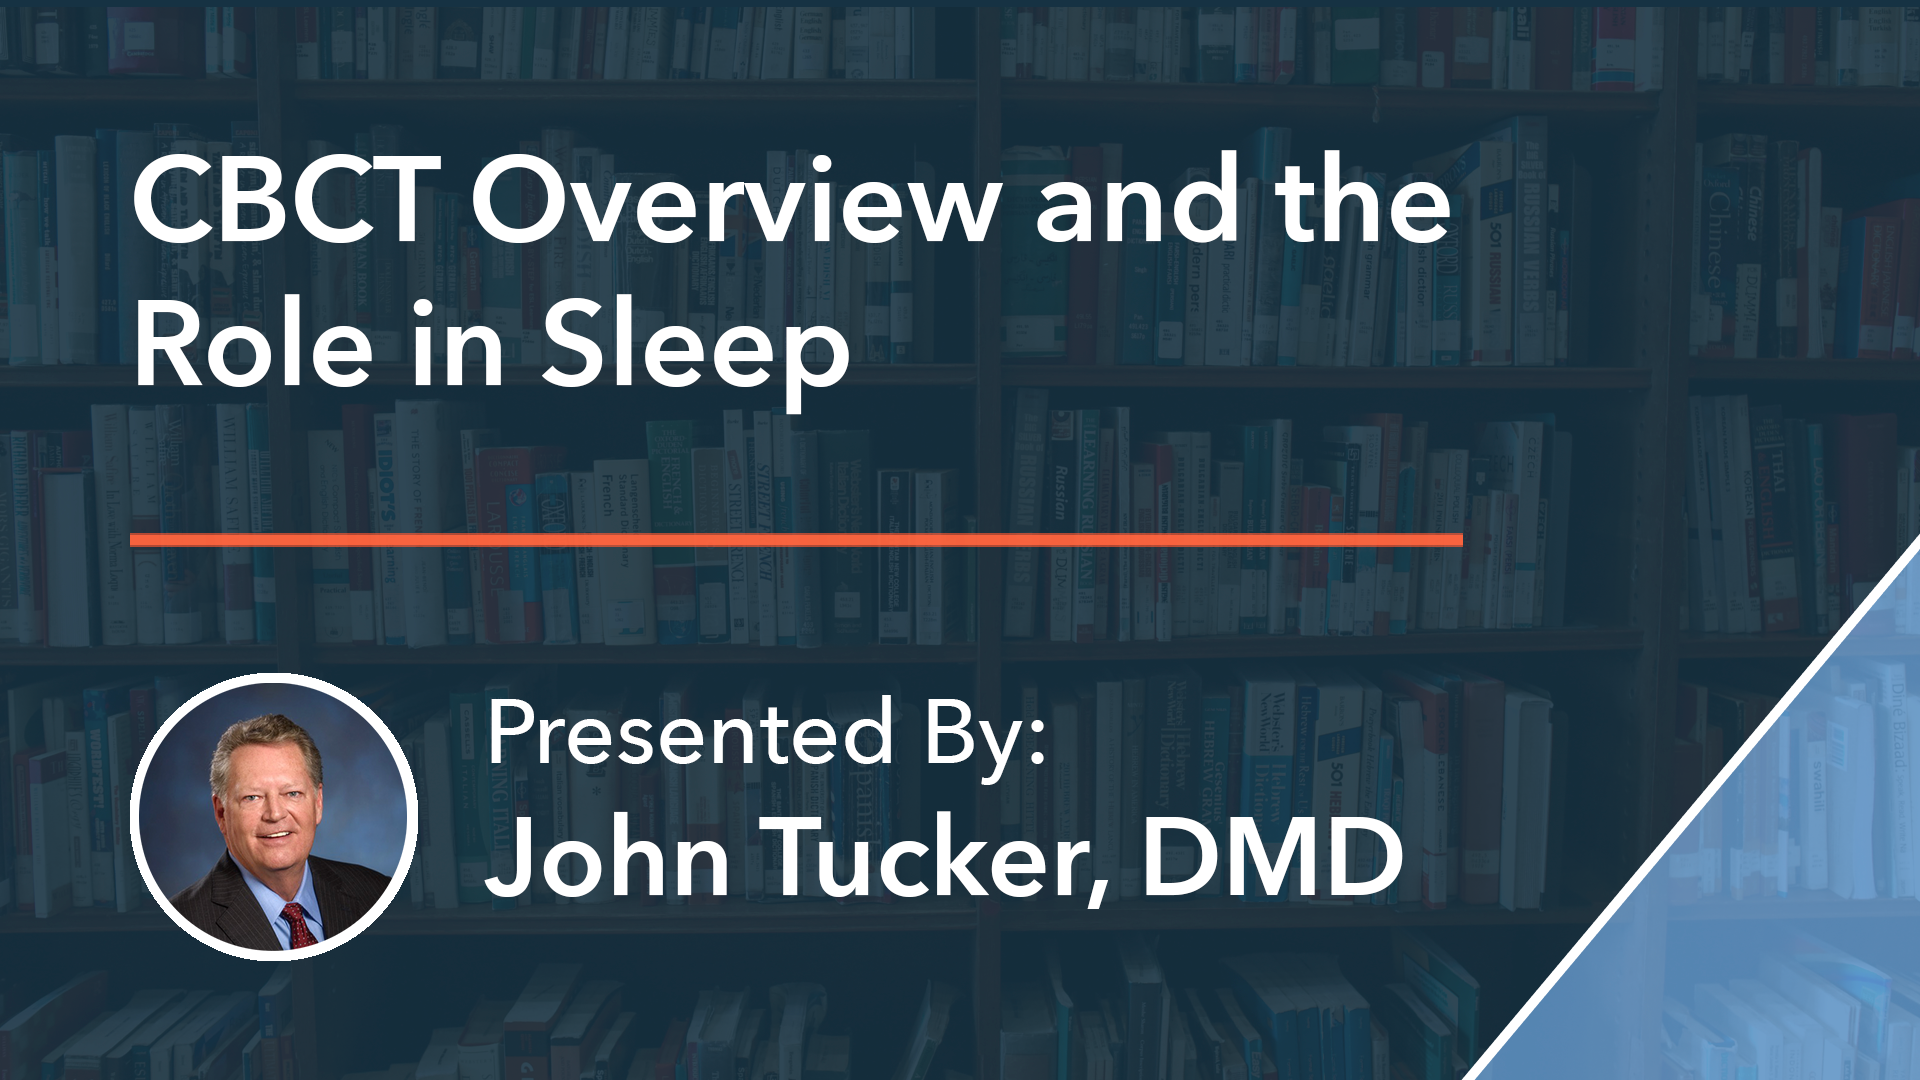 CBCT Overview and the Role in Sleep Dr John Tucker